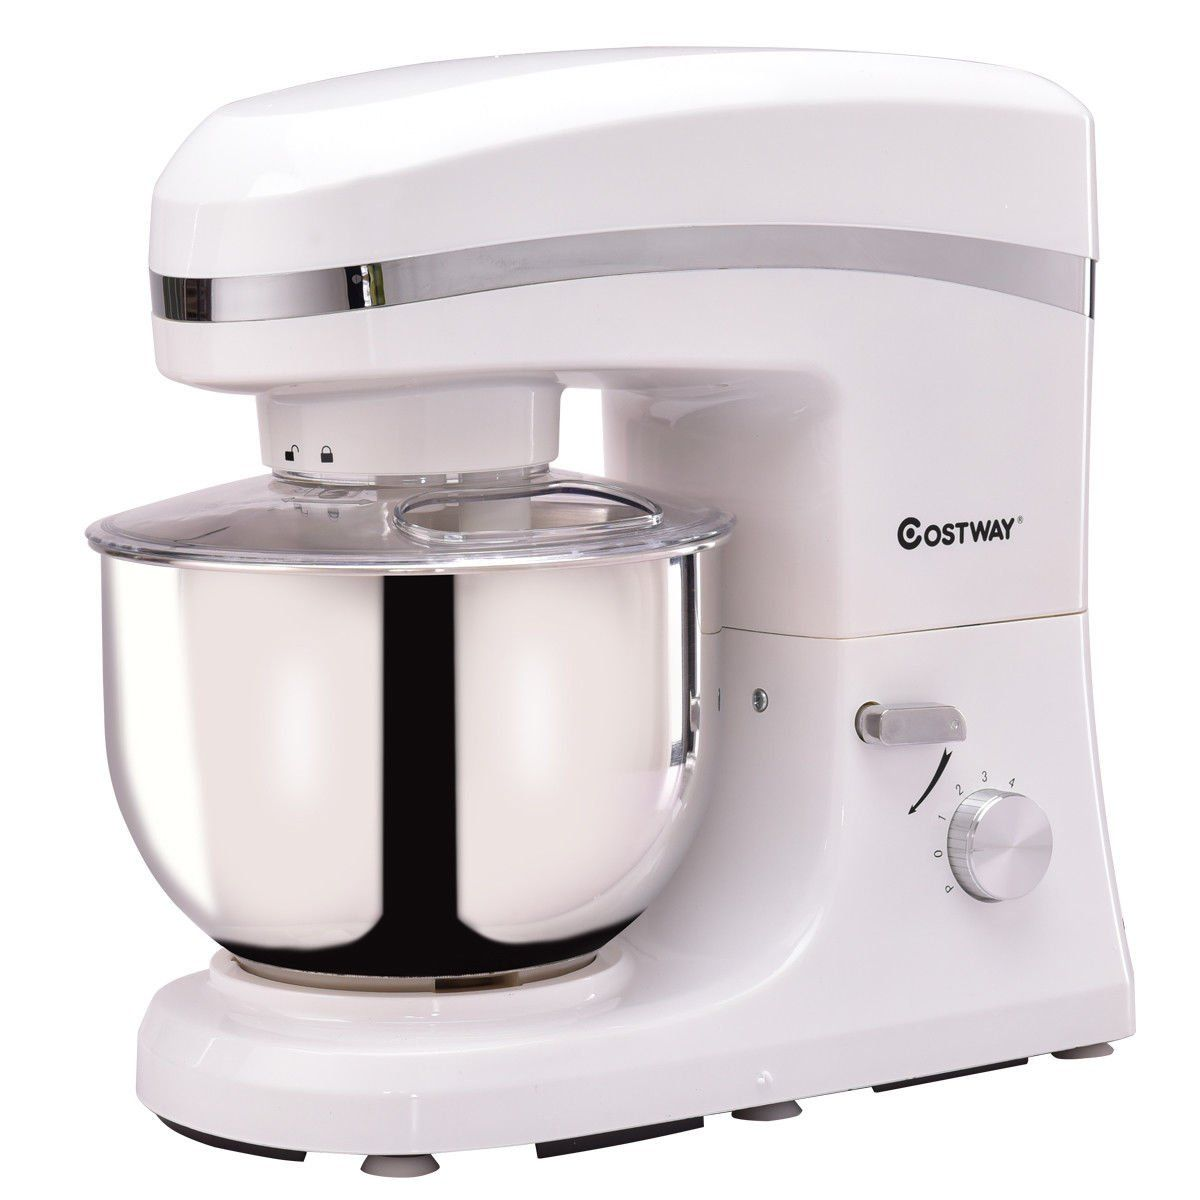 Costway Tilthead Stand Mixer 5 3qt 6speed 120v 800w Electric Food Mixer W Stainless Steel Bowlwhite Check Out This Great Product This Is An Affiliate Link